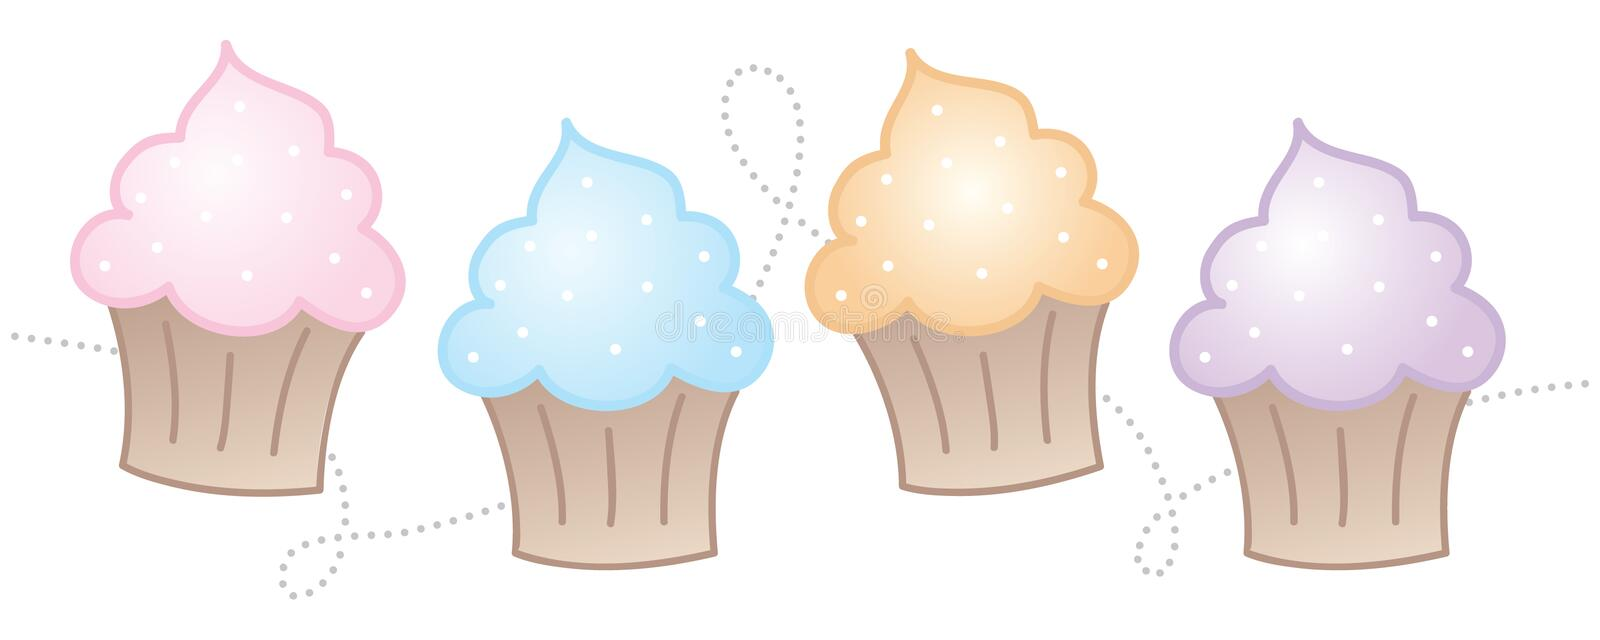 Horizontal Cupcakes. Cute and fun horizontal cupcakes royalty free illustration